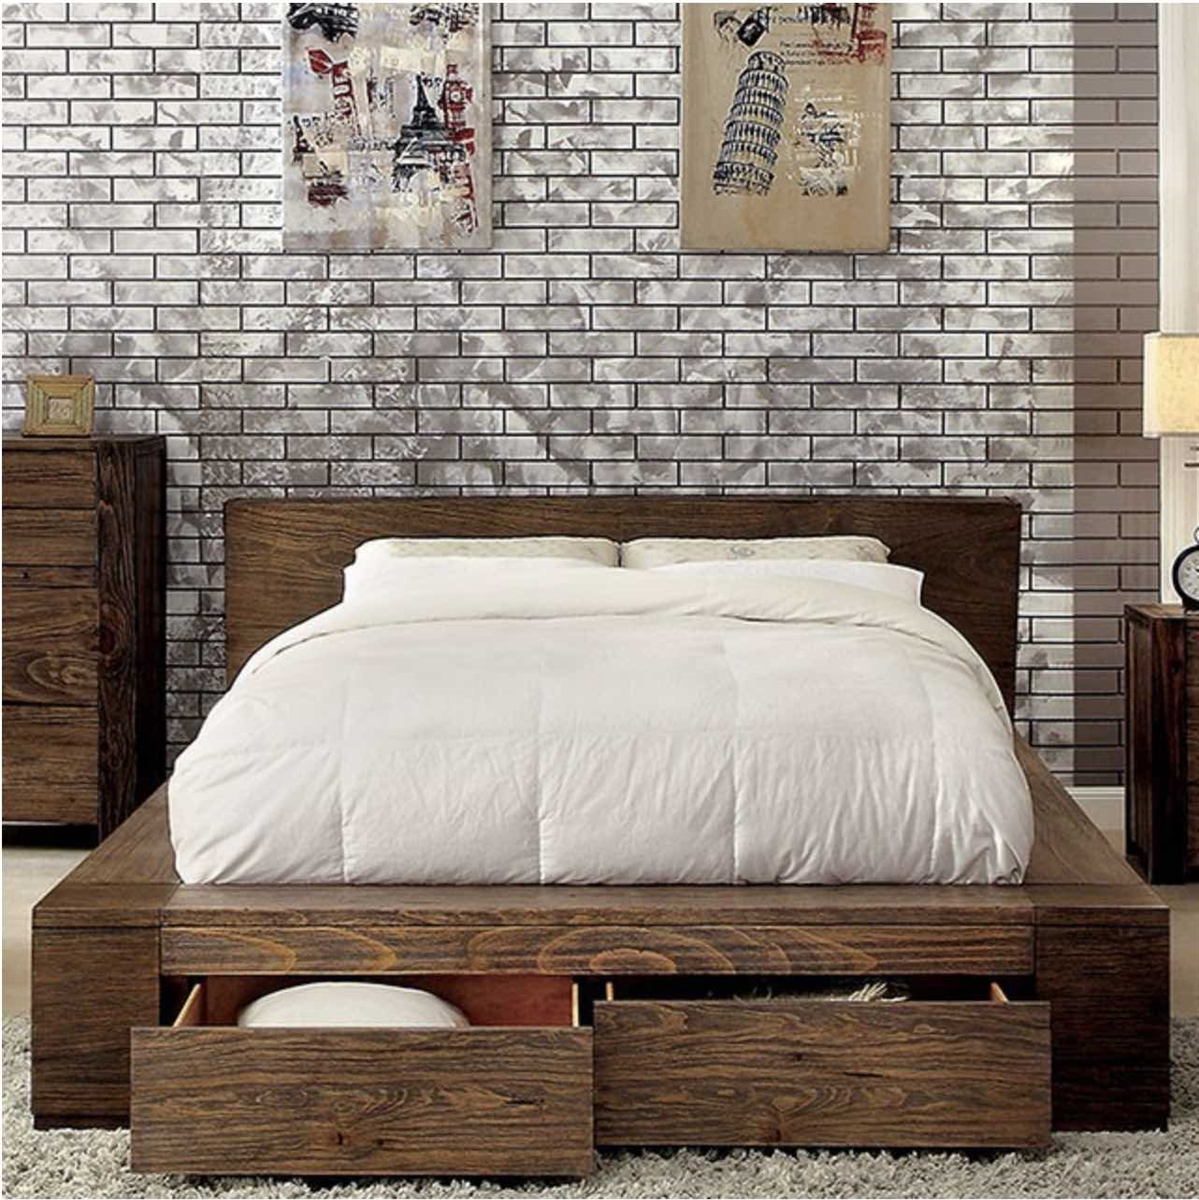 Janeiro Urban Rustic Low Profile Queen Storage Bed